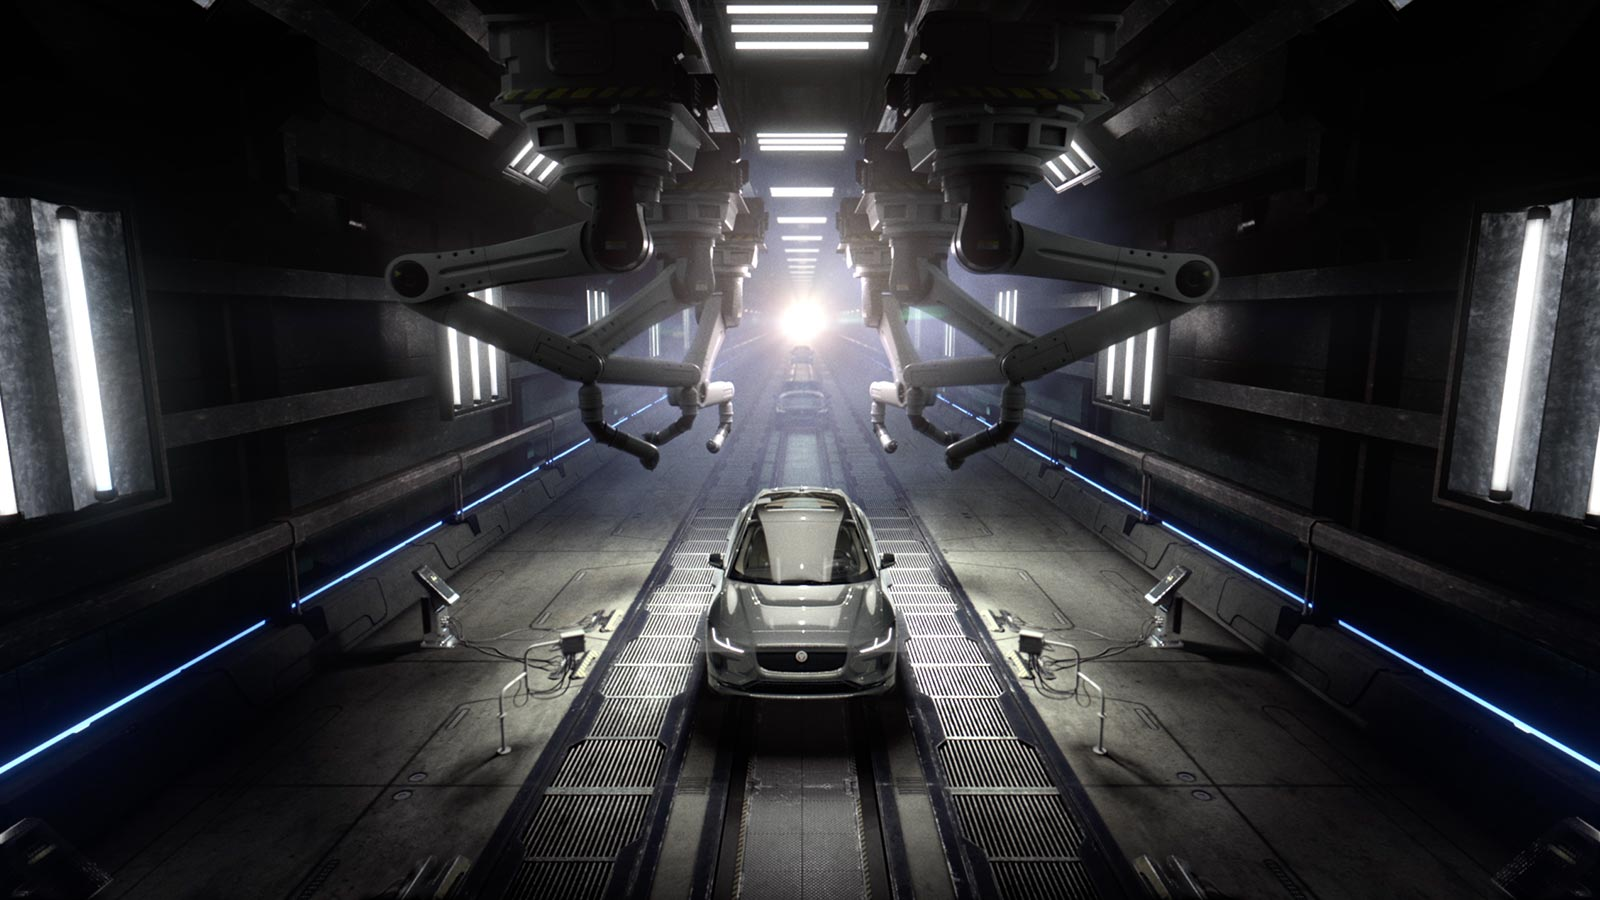 Jaguar I-PACE on the production line with robots.